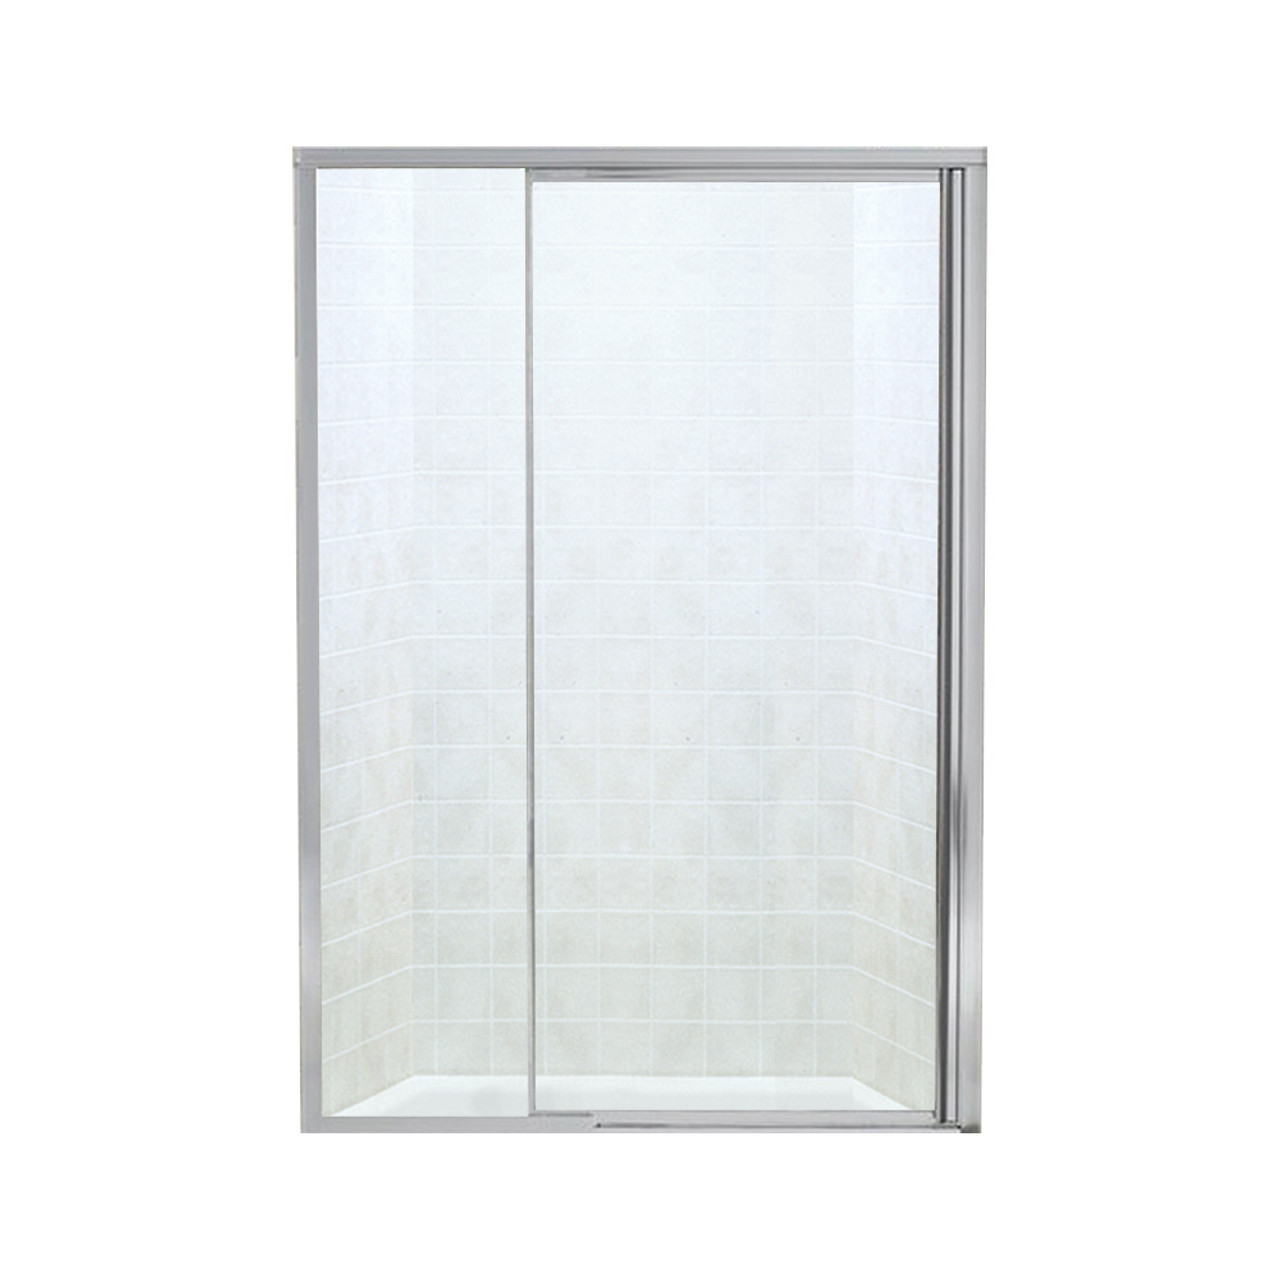 Sterling Sp1505d 48s Vista Pivot Ii 42 To 48 In X 65 5 In Framed Pivot Shower Door With Clear Glass